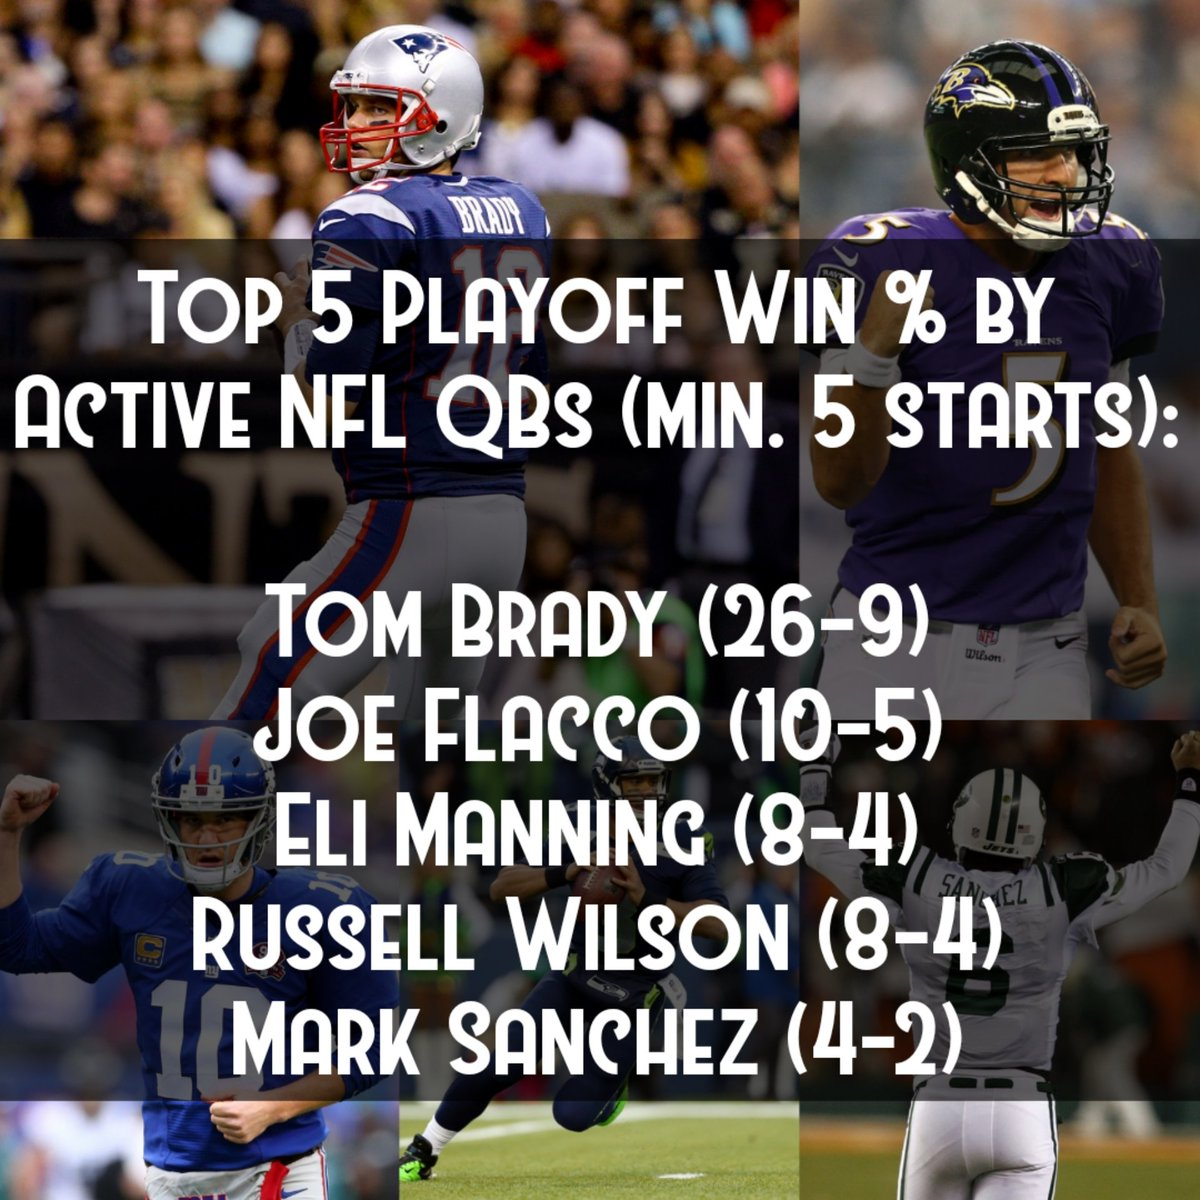 #Patriots #Ravens #Seahawks #Jets #giants #NFLPlayoffs #NFL #nflhistory #Football https://t.co/BpxxjlPMlb